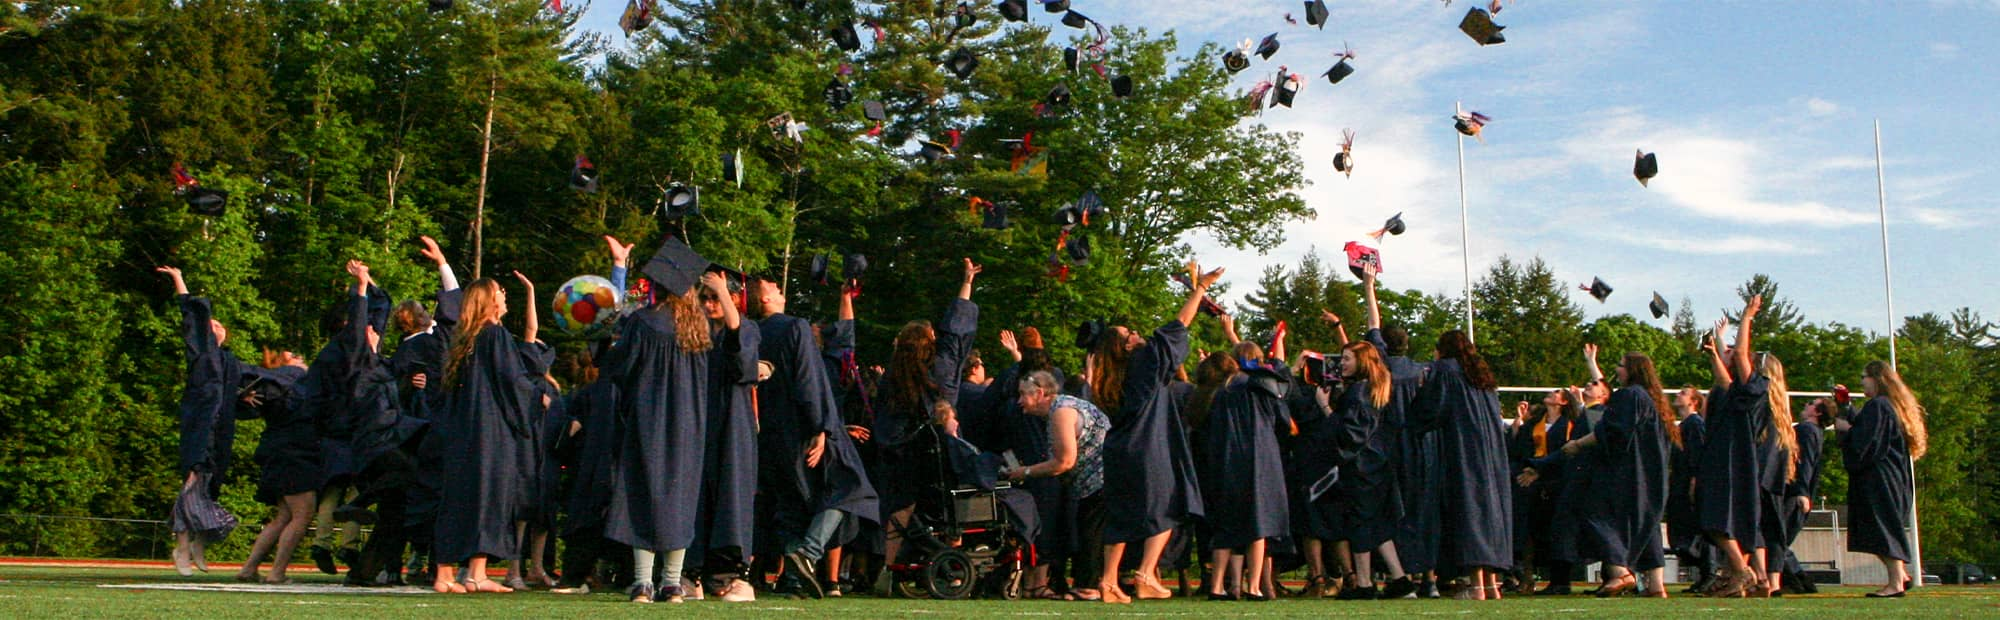 Students Throwing Caps in the Air at Graduation